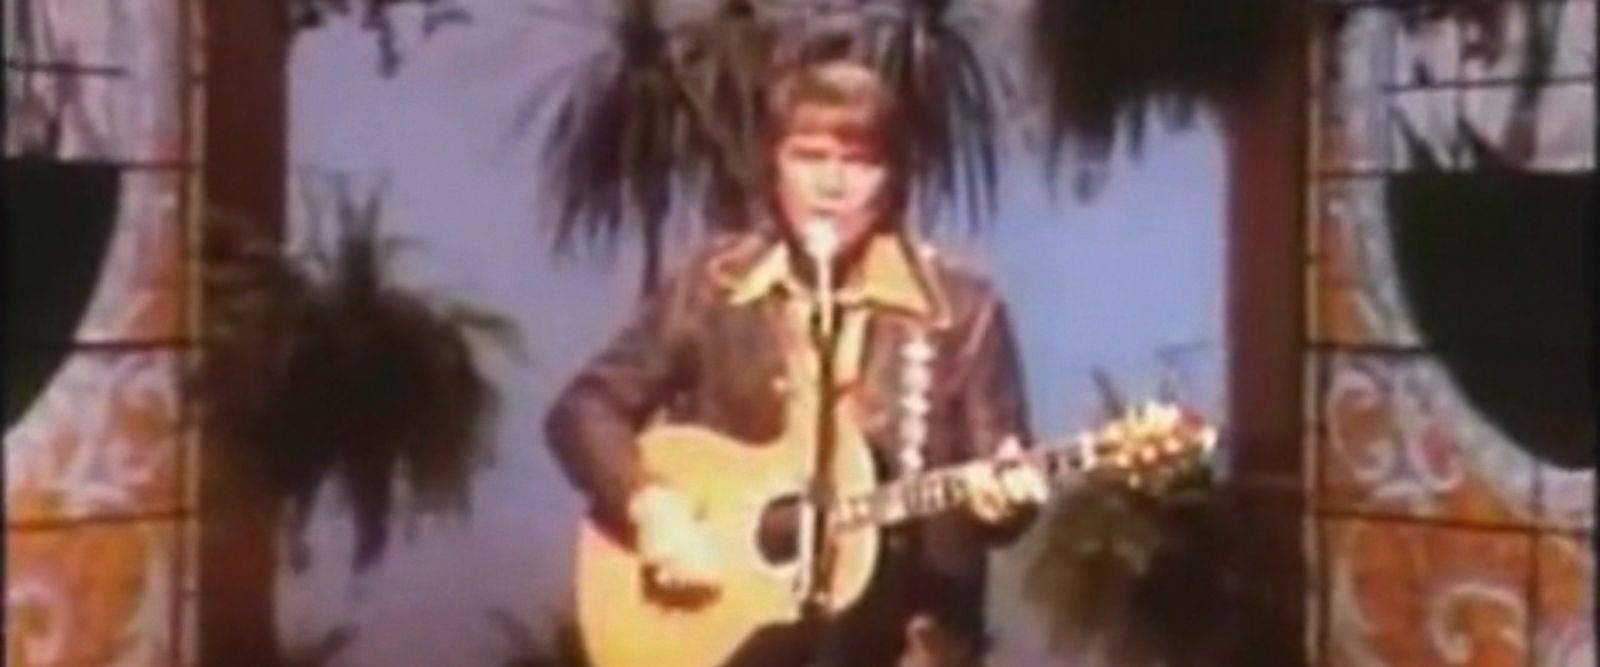 VIDEO: Glen Campbell, 80, was diagnosed with Alzheimers disease in 2011.